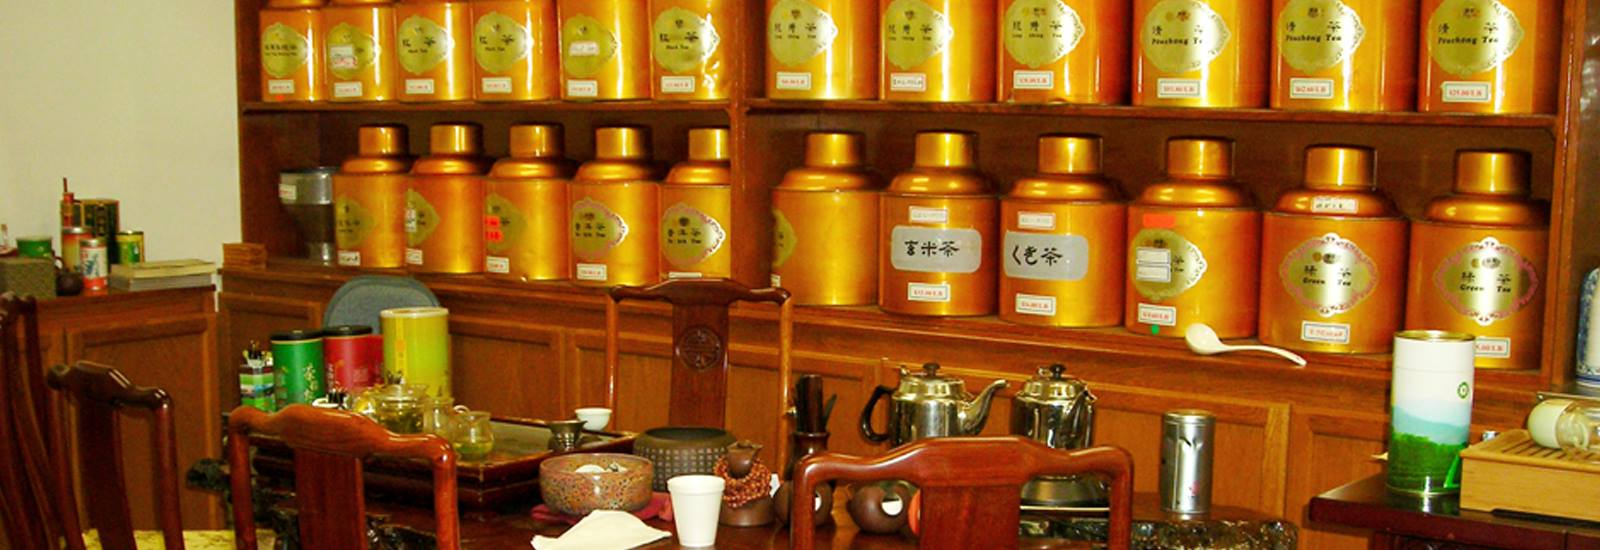 Traditional Taiwanese tea tastings can be found at Seattle Best Tea in the heart of the International District. (Image: Seattle Best Tea Facebook){ }